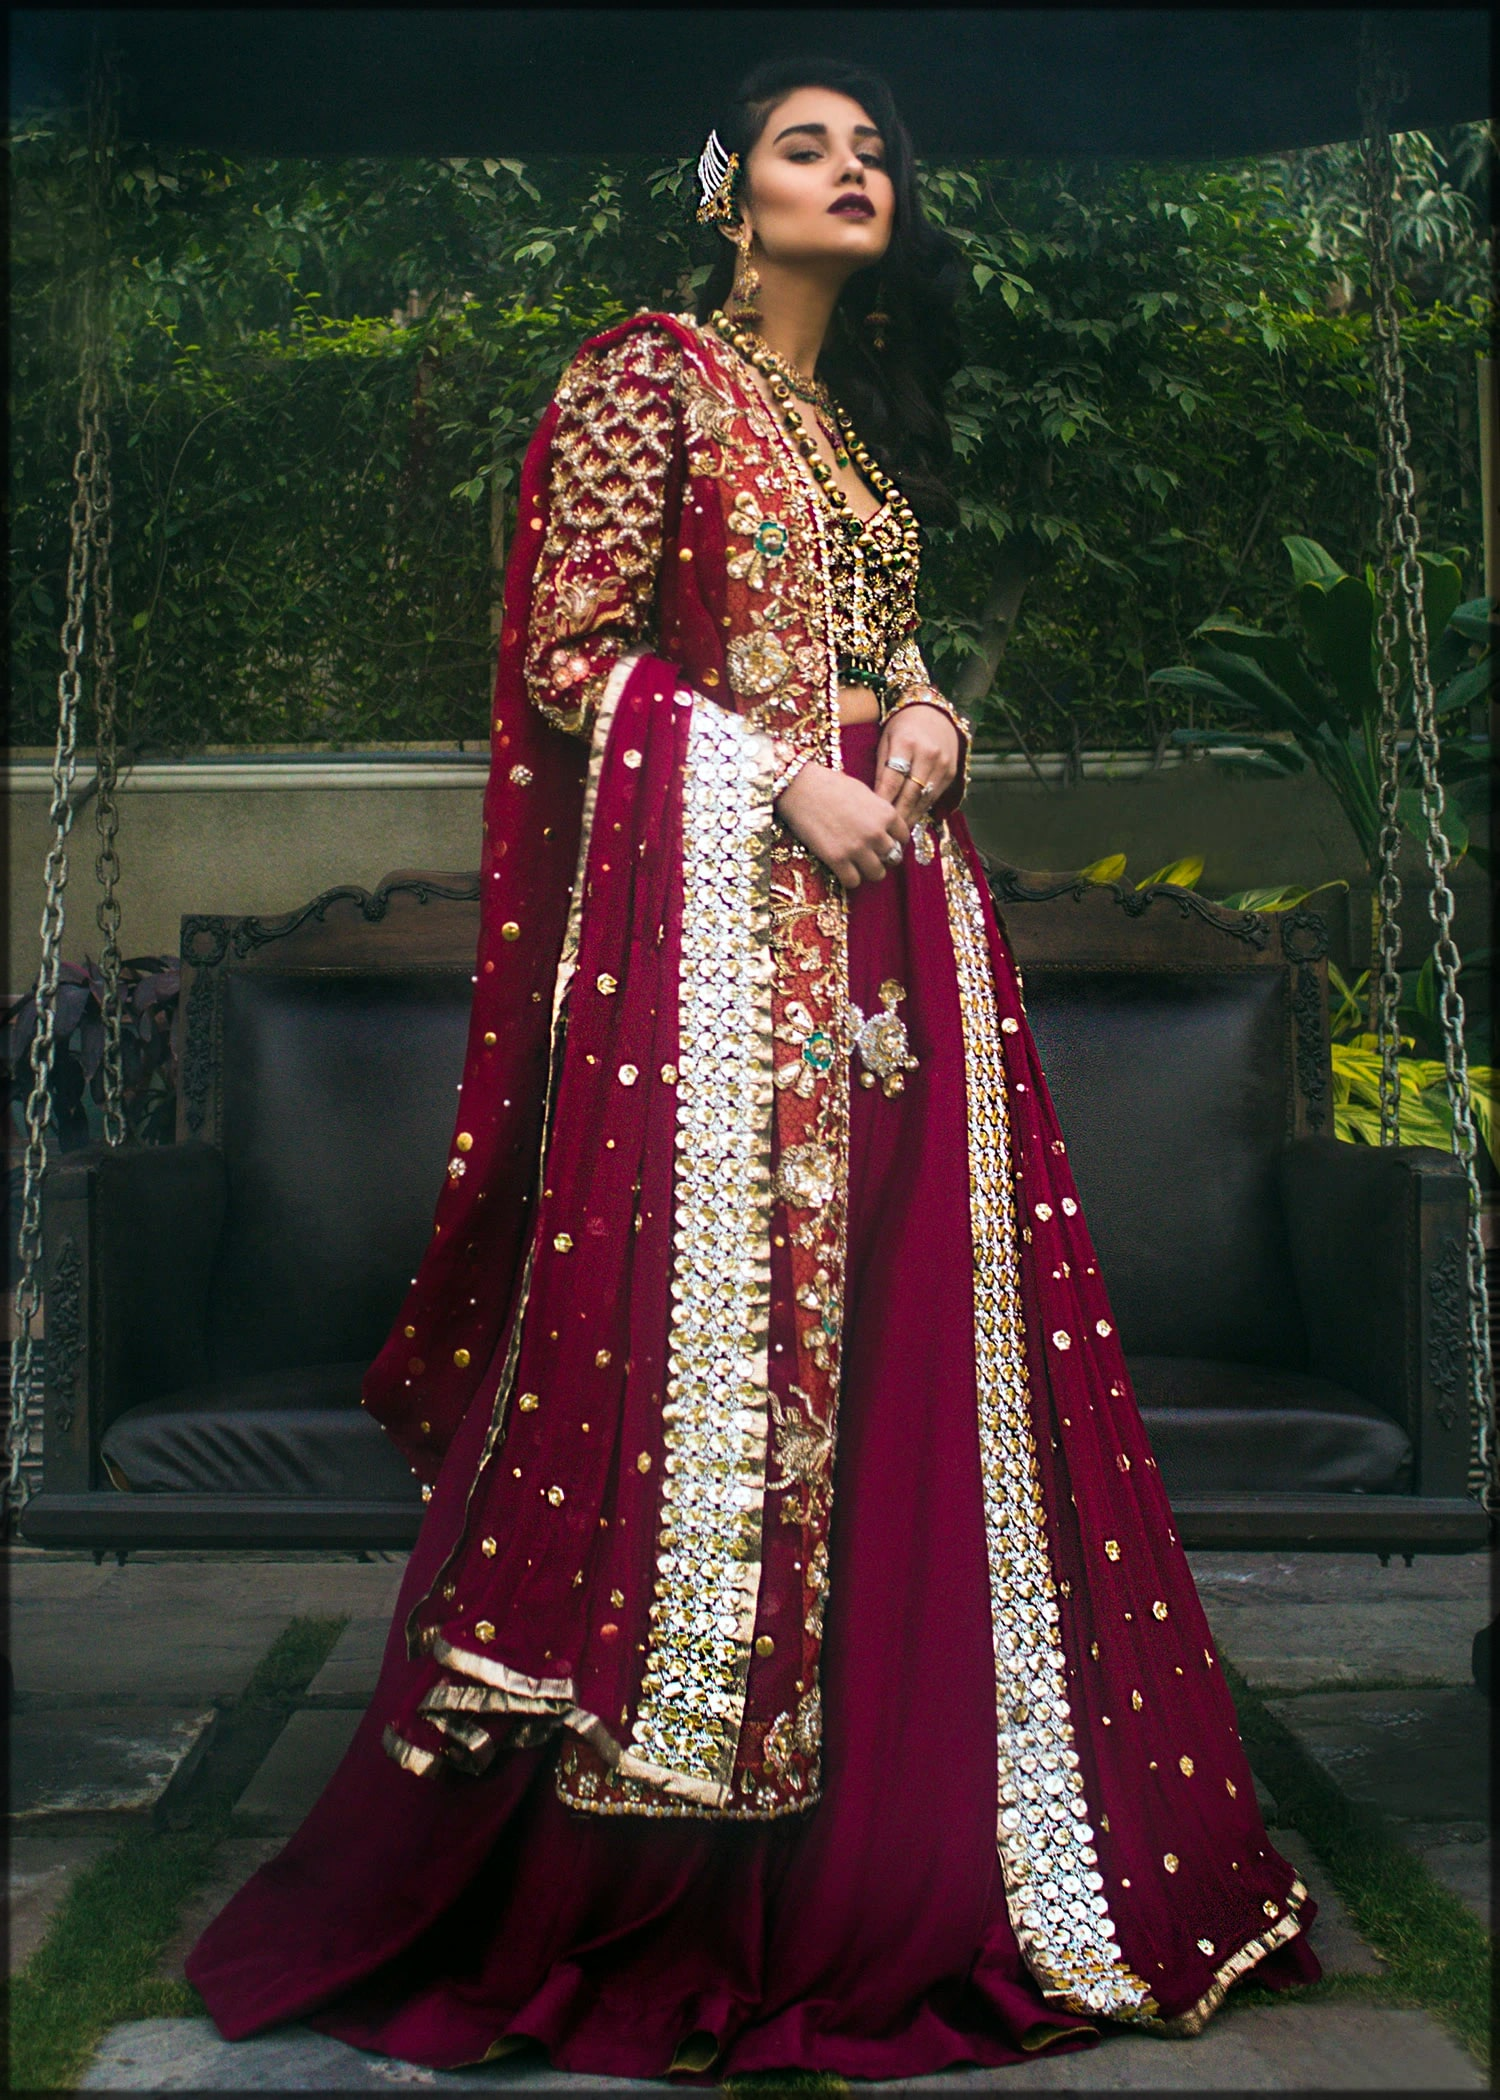 Deep pink heavily embroidered bridal dress by sadaf fawad khan